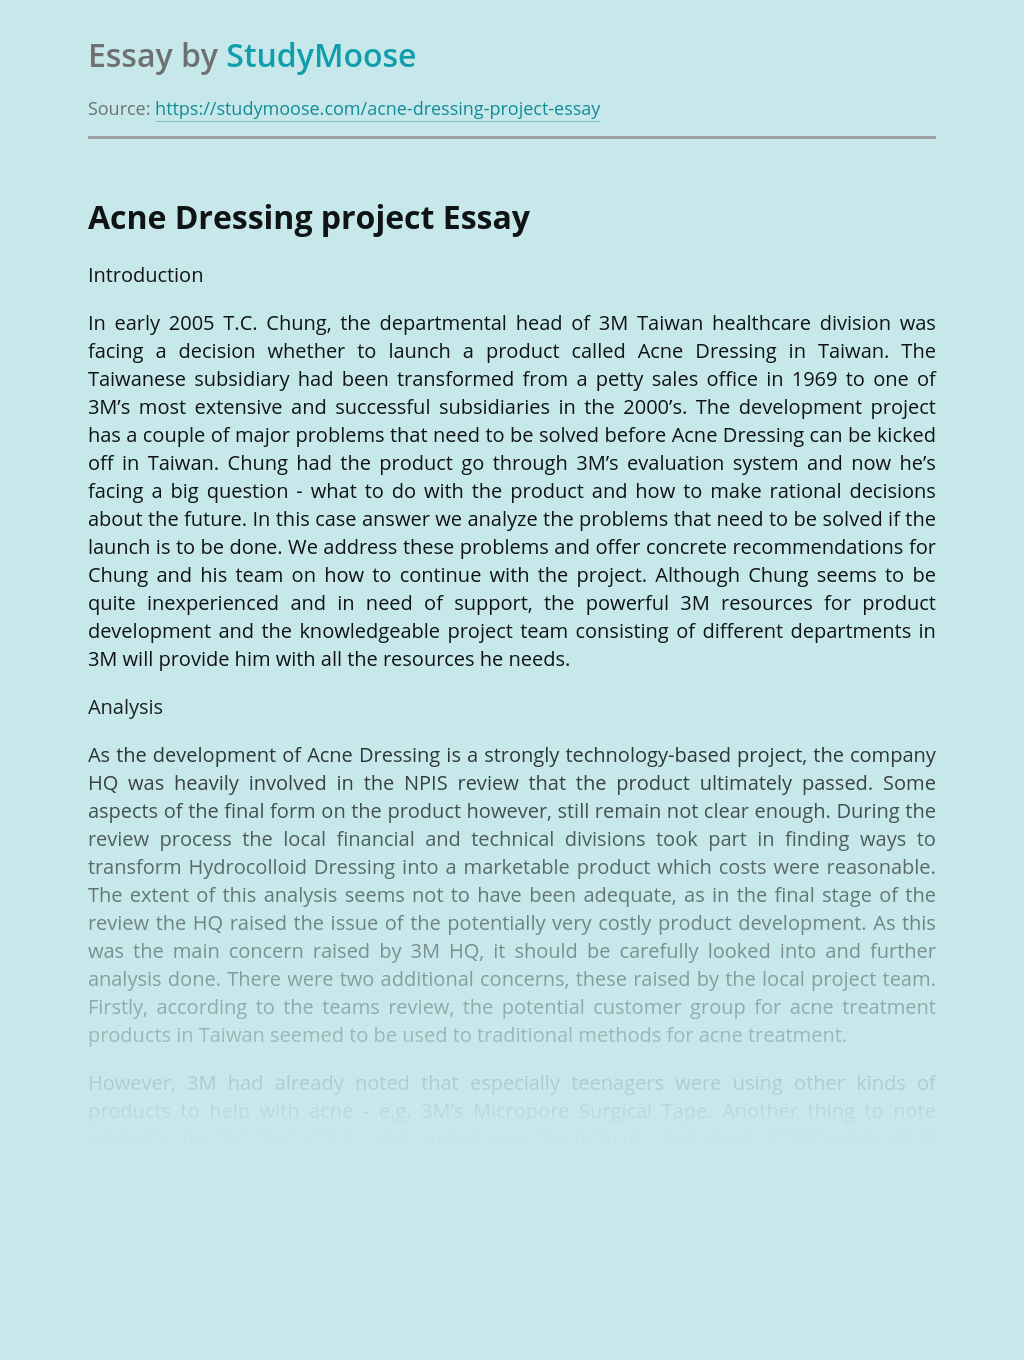 Marketing Plan for Acne Dressing Project